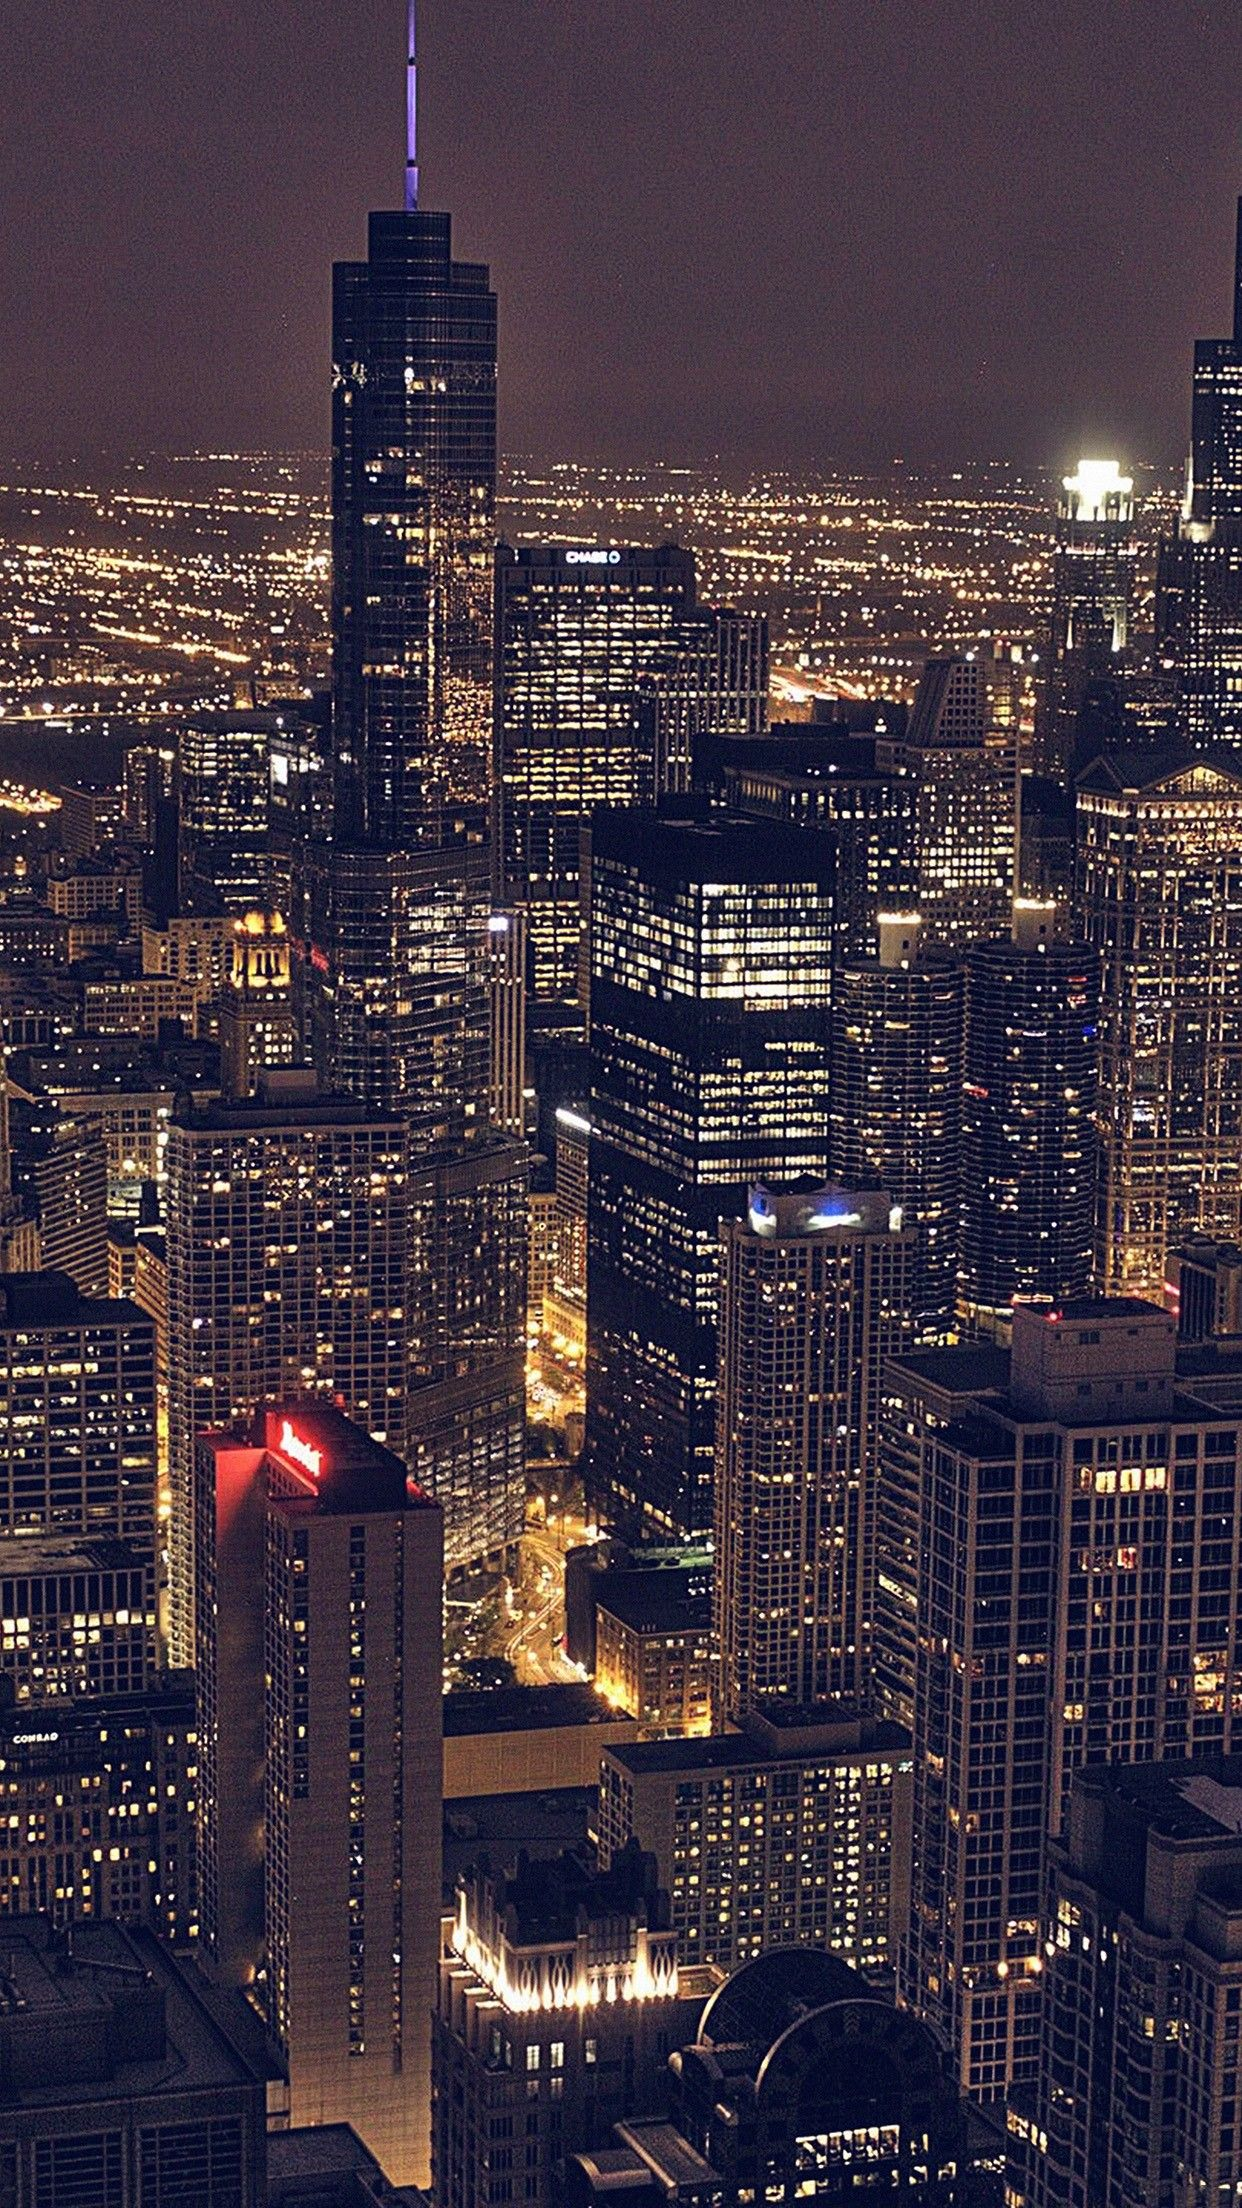 City Night Sky View Modern Buildings Skyscrapers Smartphone Wallpaper And Lockscreen Hd Check More At Https Phone City Wallpaper City View Night Chicago City